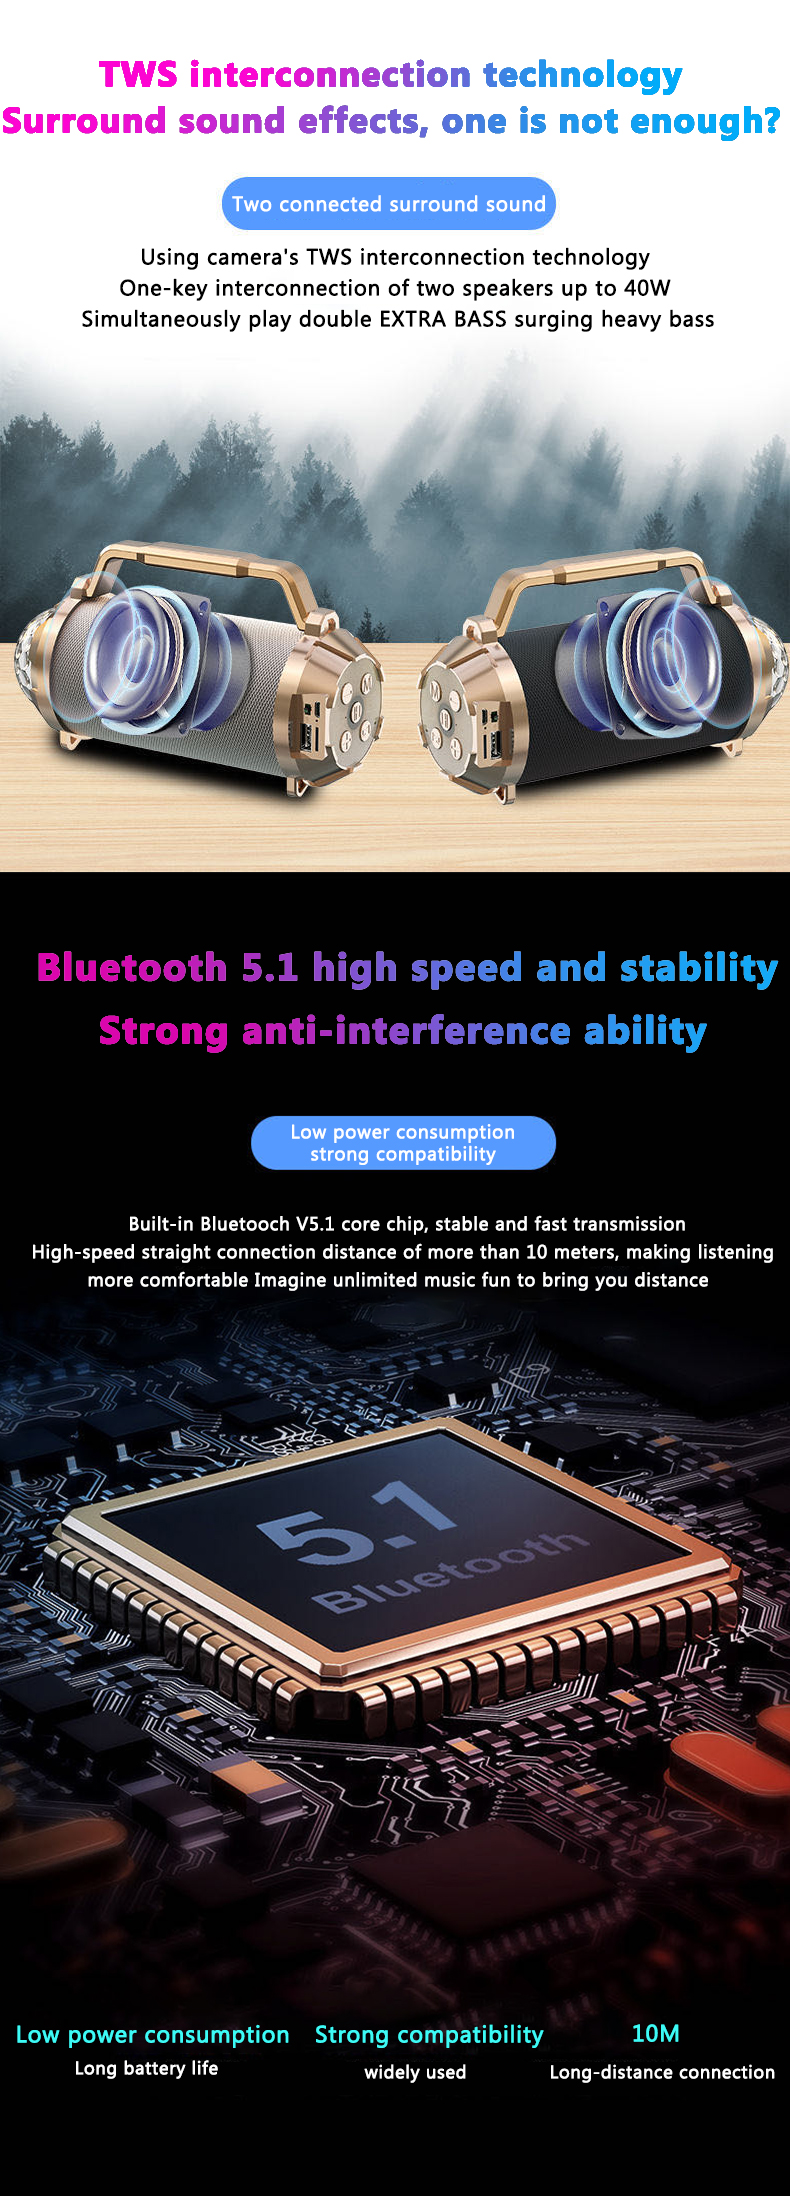 Portable Bluetooth Speaker Box Hifi For Mobile Phone/Computer Wireless Waterproof 2020 Amazon Top Seller Mini Speaker Bluetooth